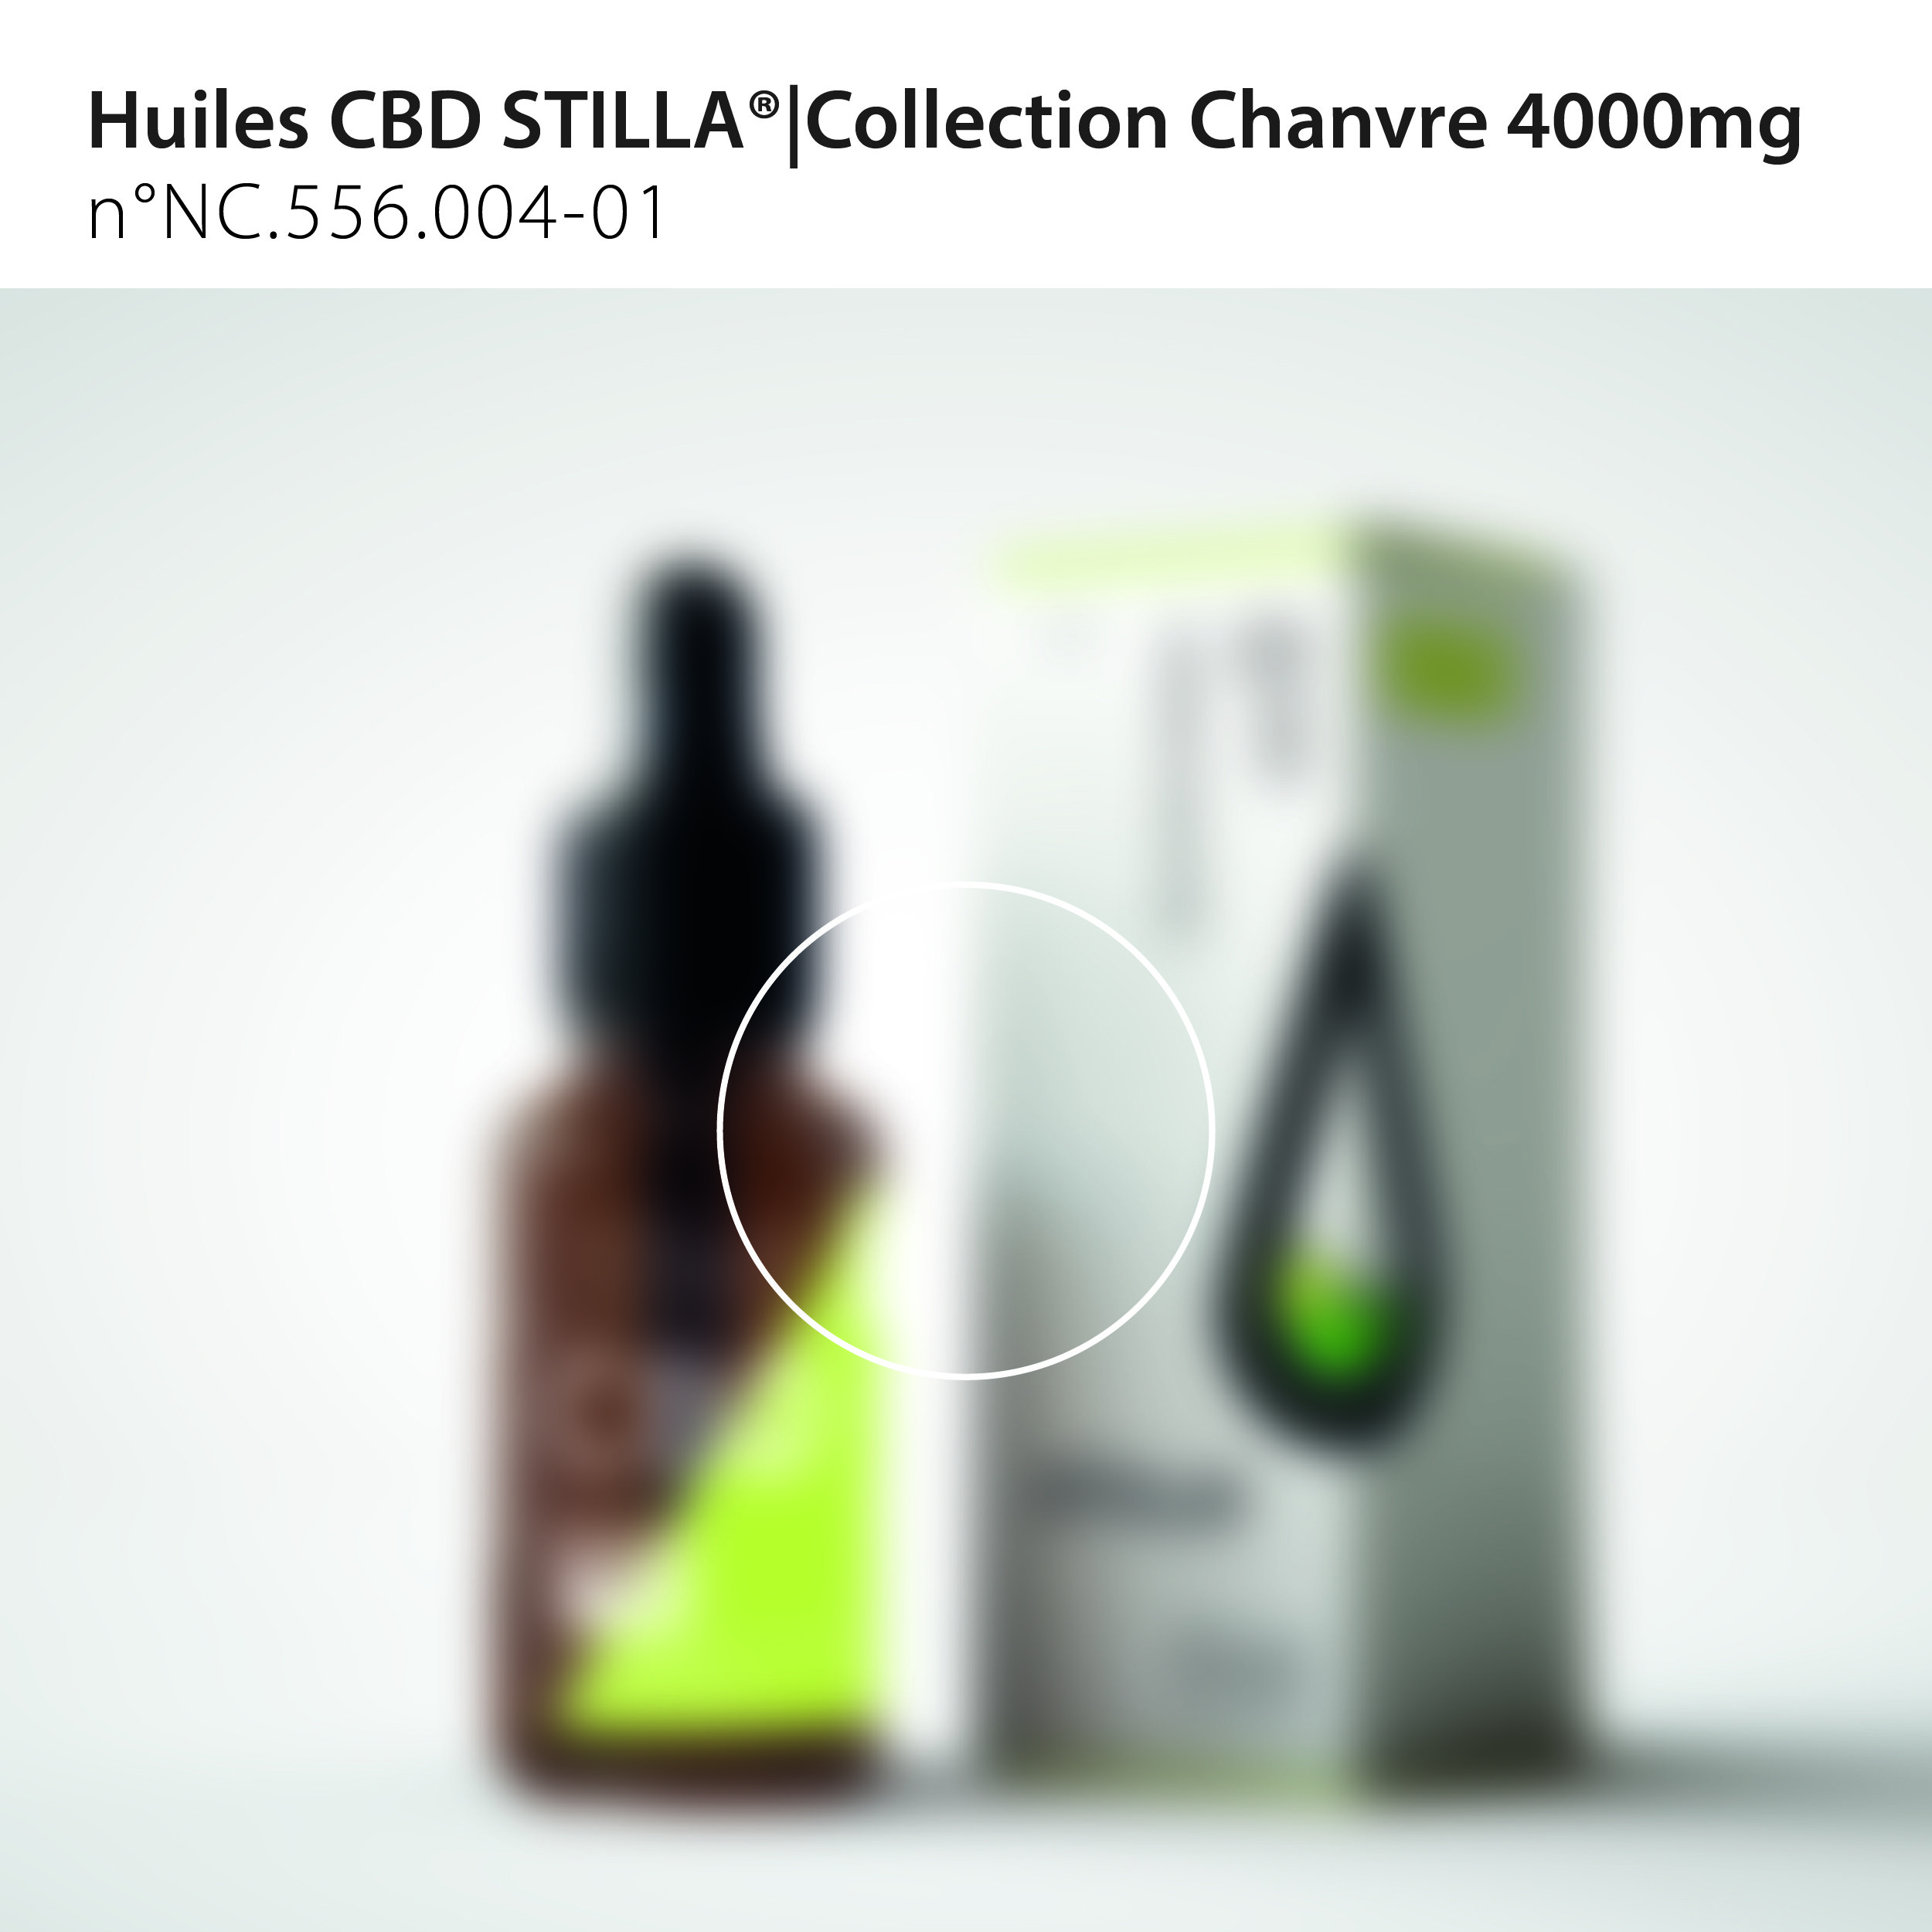 CHANVRE4000_Analyses1.jpg